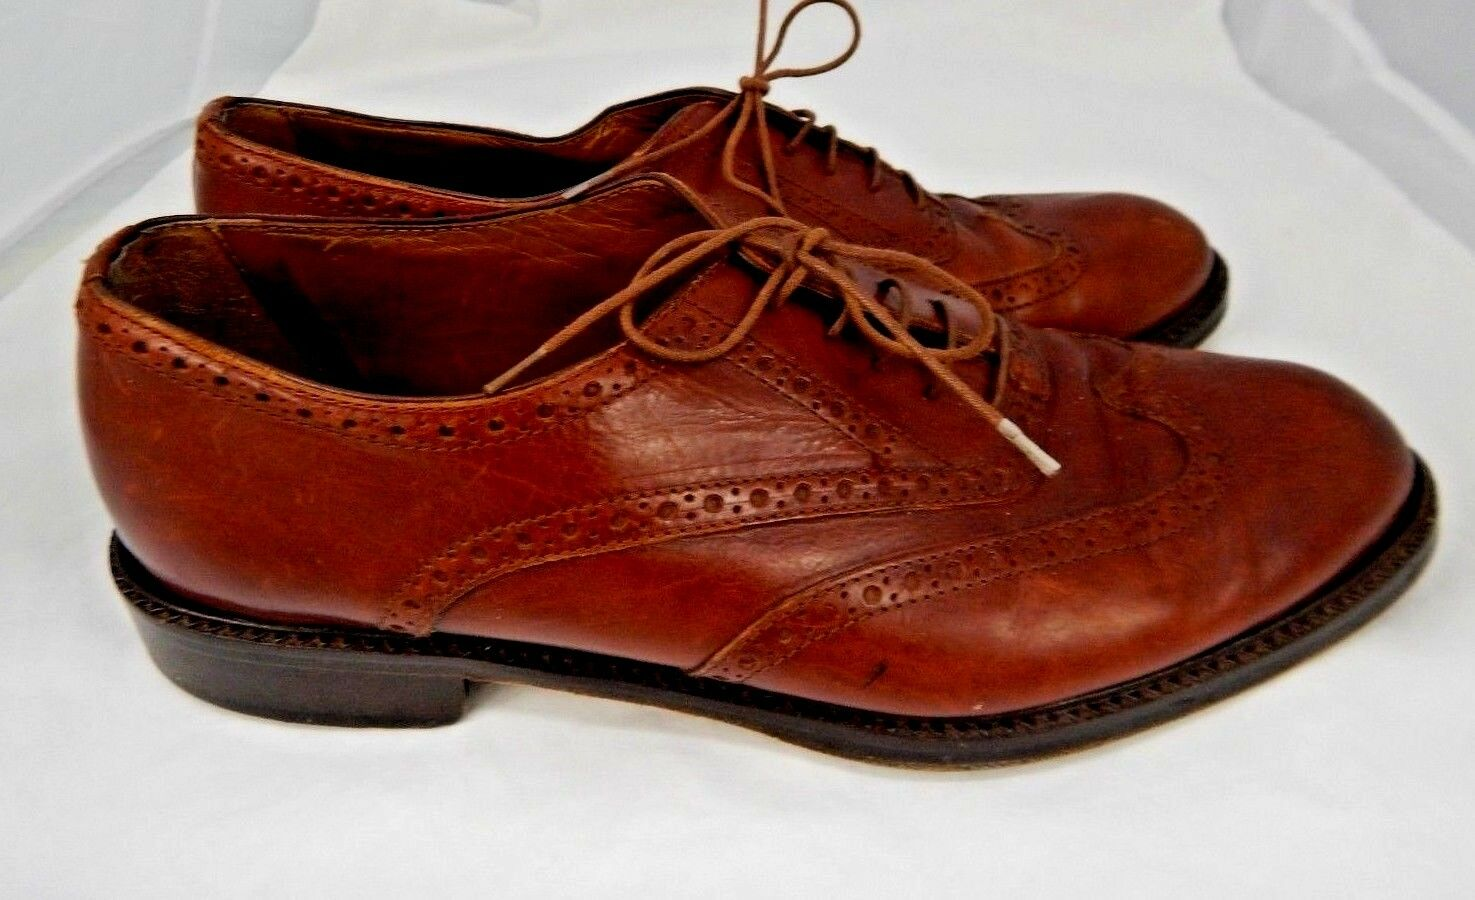 Vintage Men's Joan & David Hand Made Leather shoes Sz 42 10  Made in